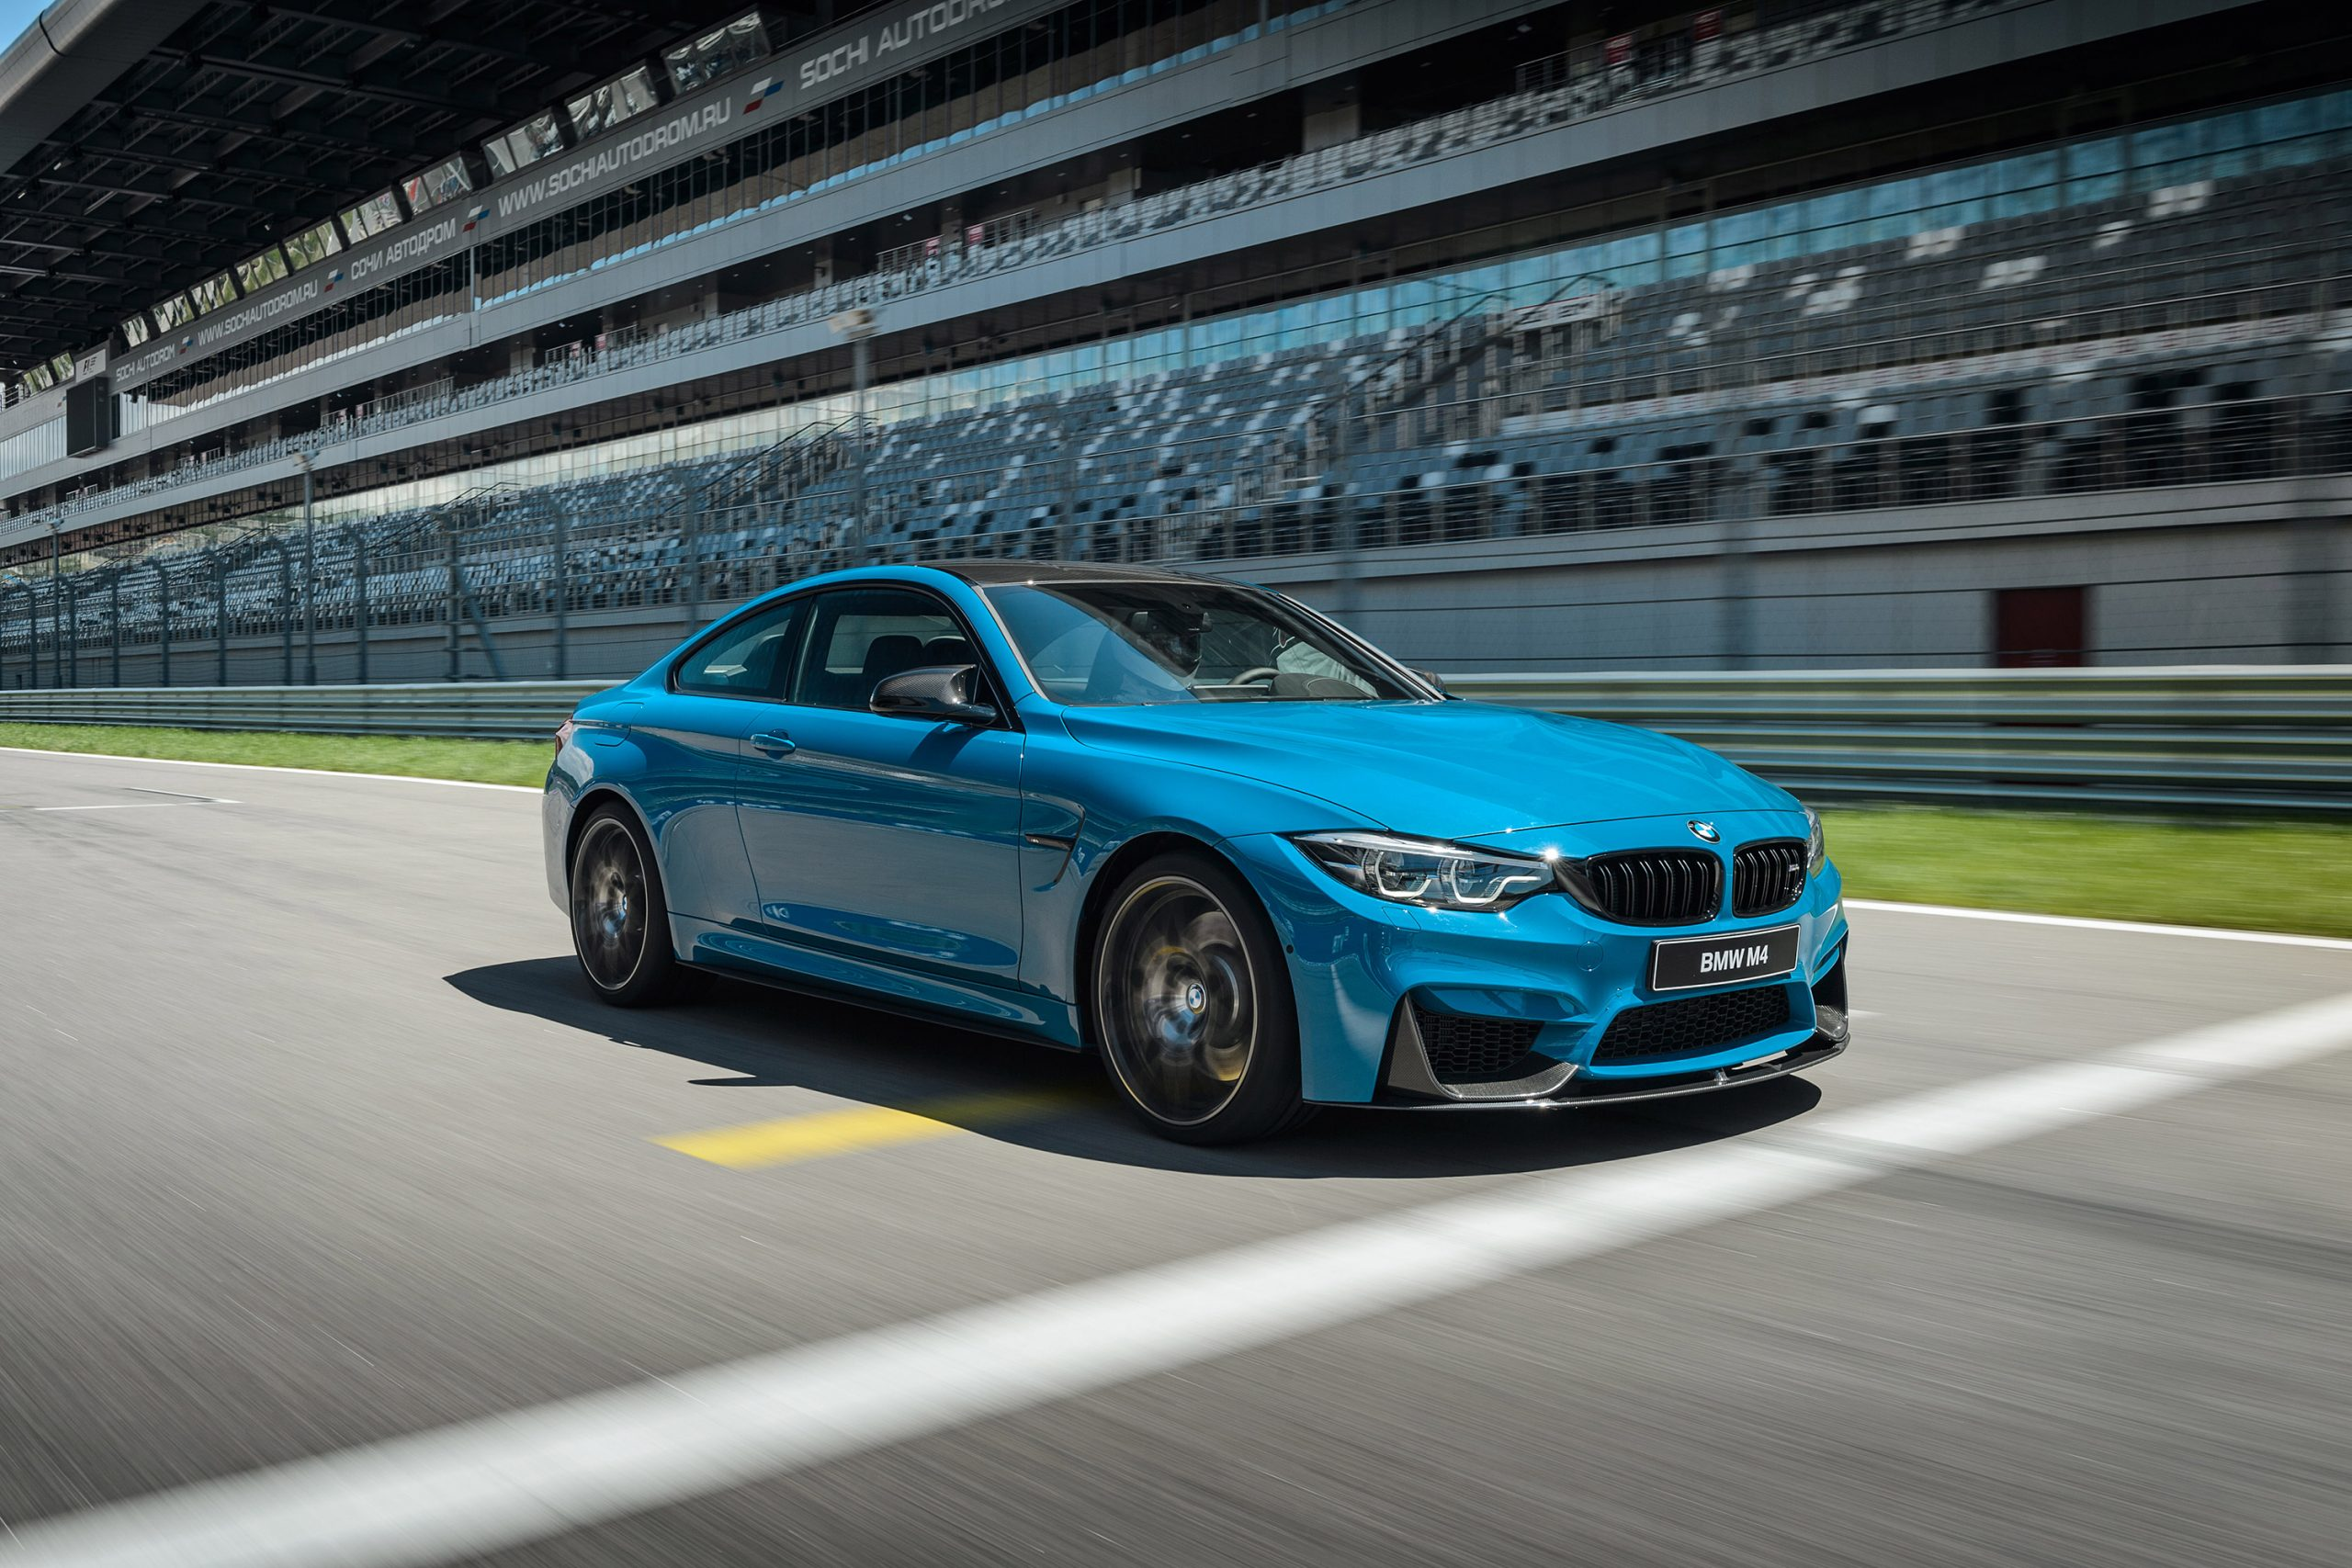 2018 Bmw M4 Wallpapers Supercars Net